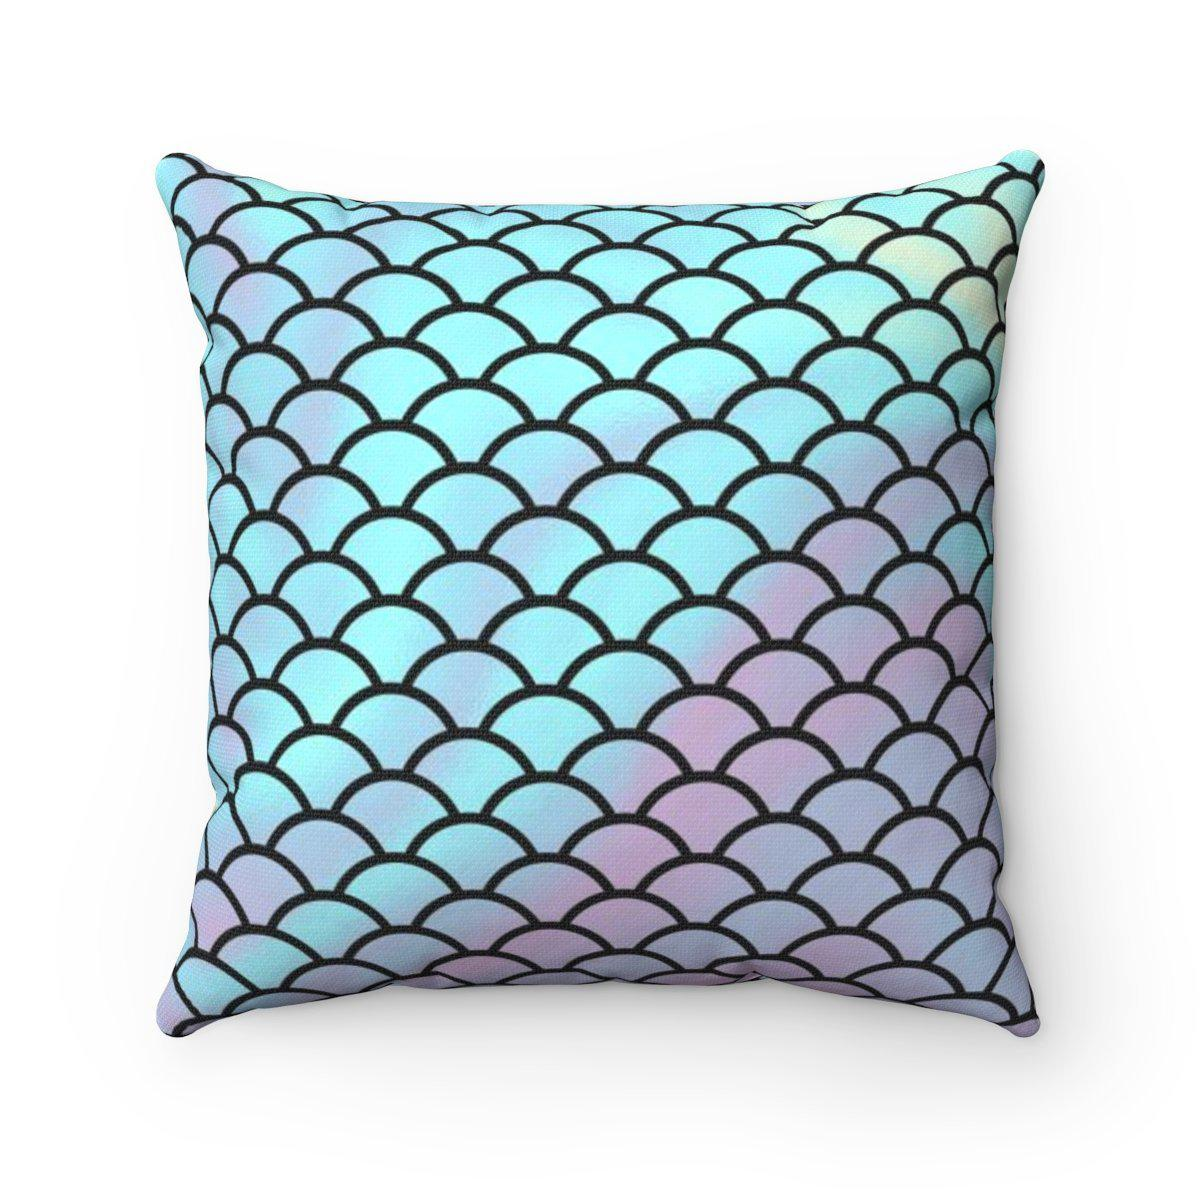 Mermaid scales hologram abstract nautical decorative cushion cover-Home Decor - Decorative Accents - Pillows & Throws - Decorative Pillows-Maison d'Elite-14x14-Très Elite